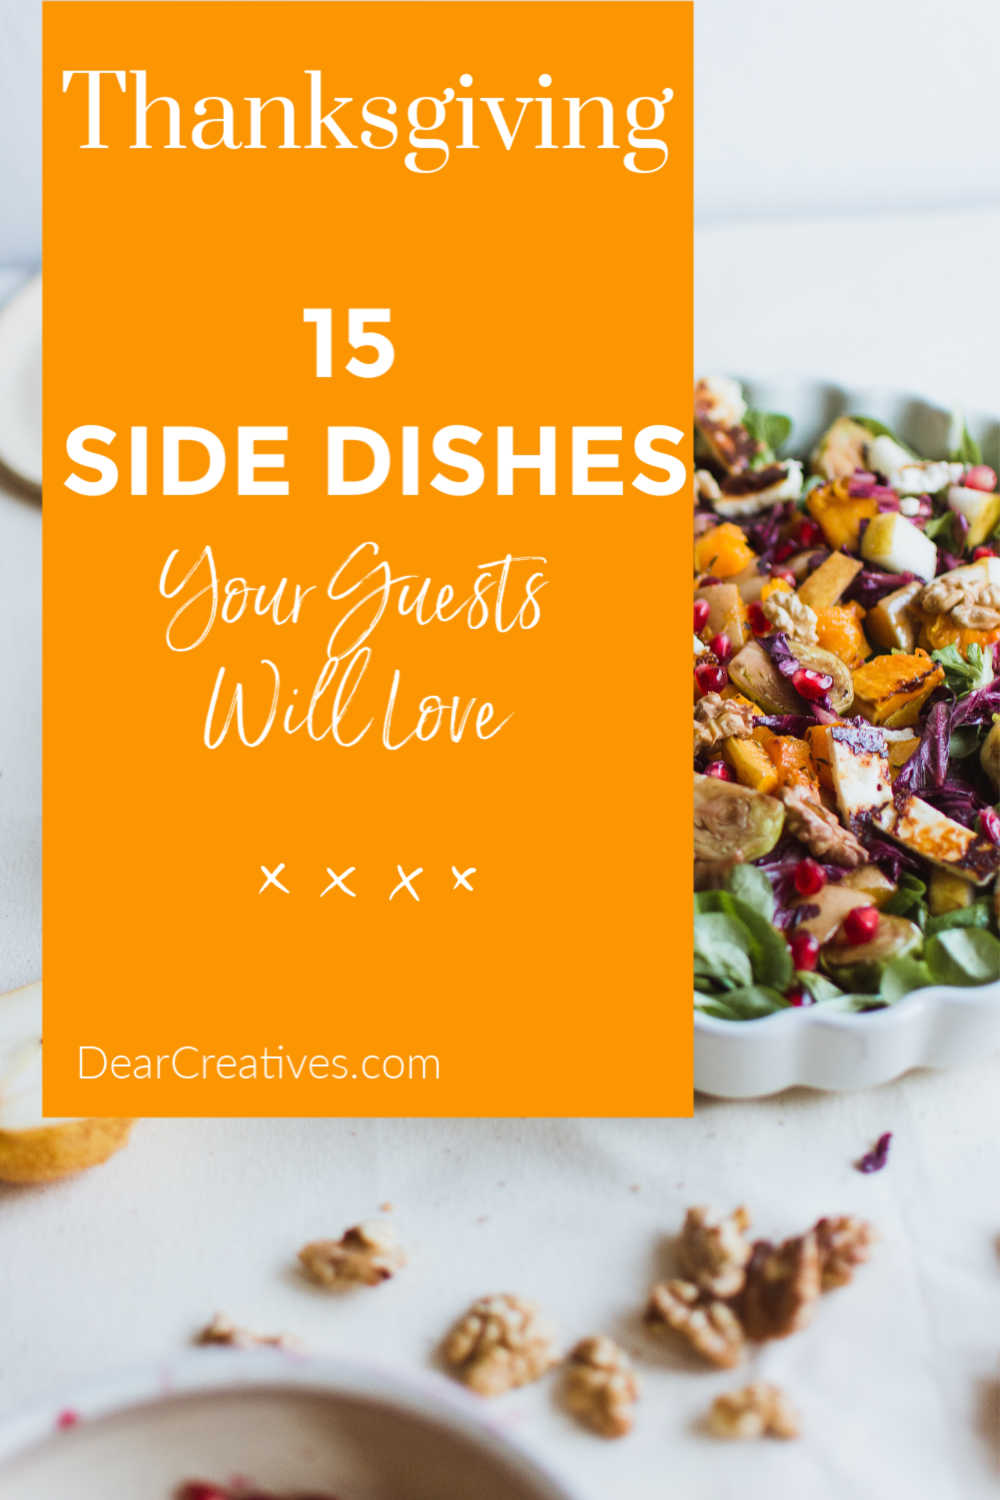 15 Thanksgiving Side Dishes Your Guest Will Love!